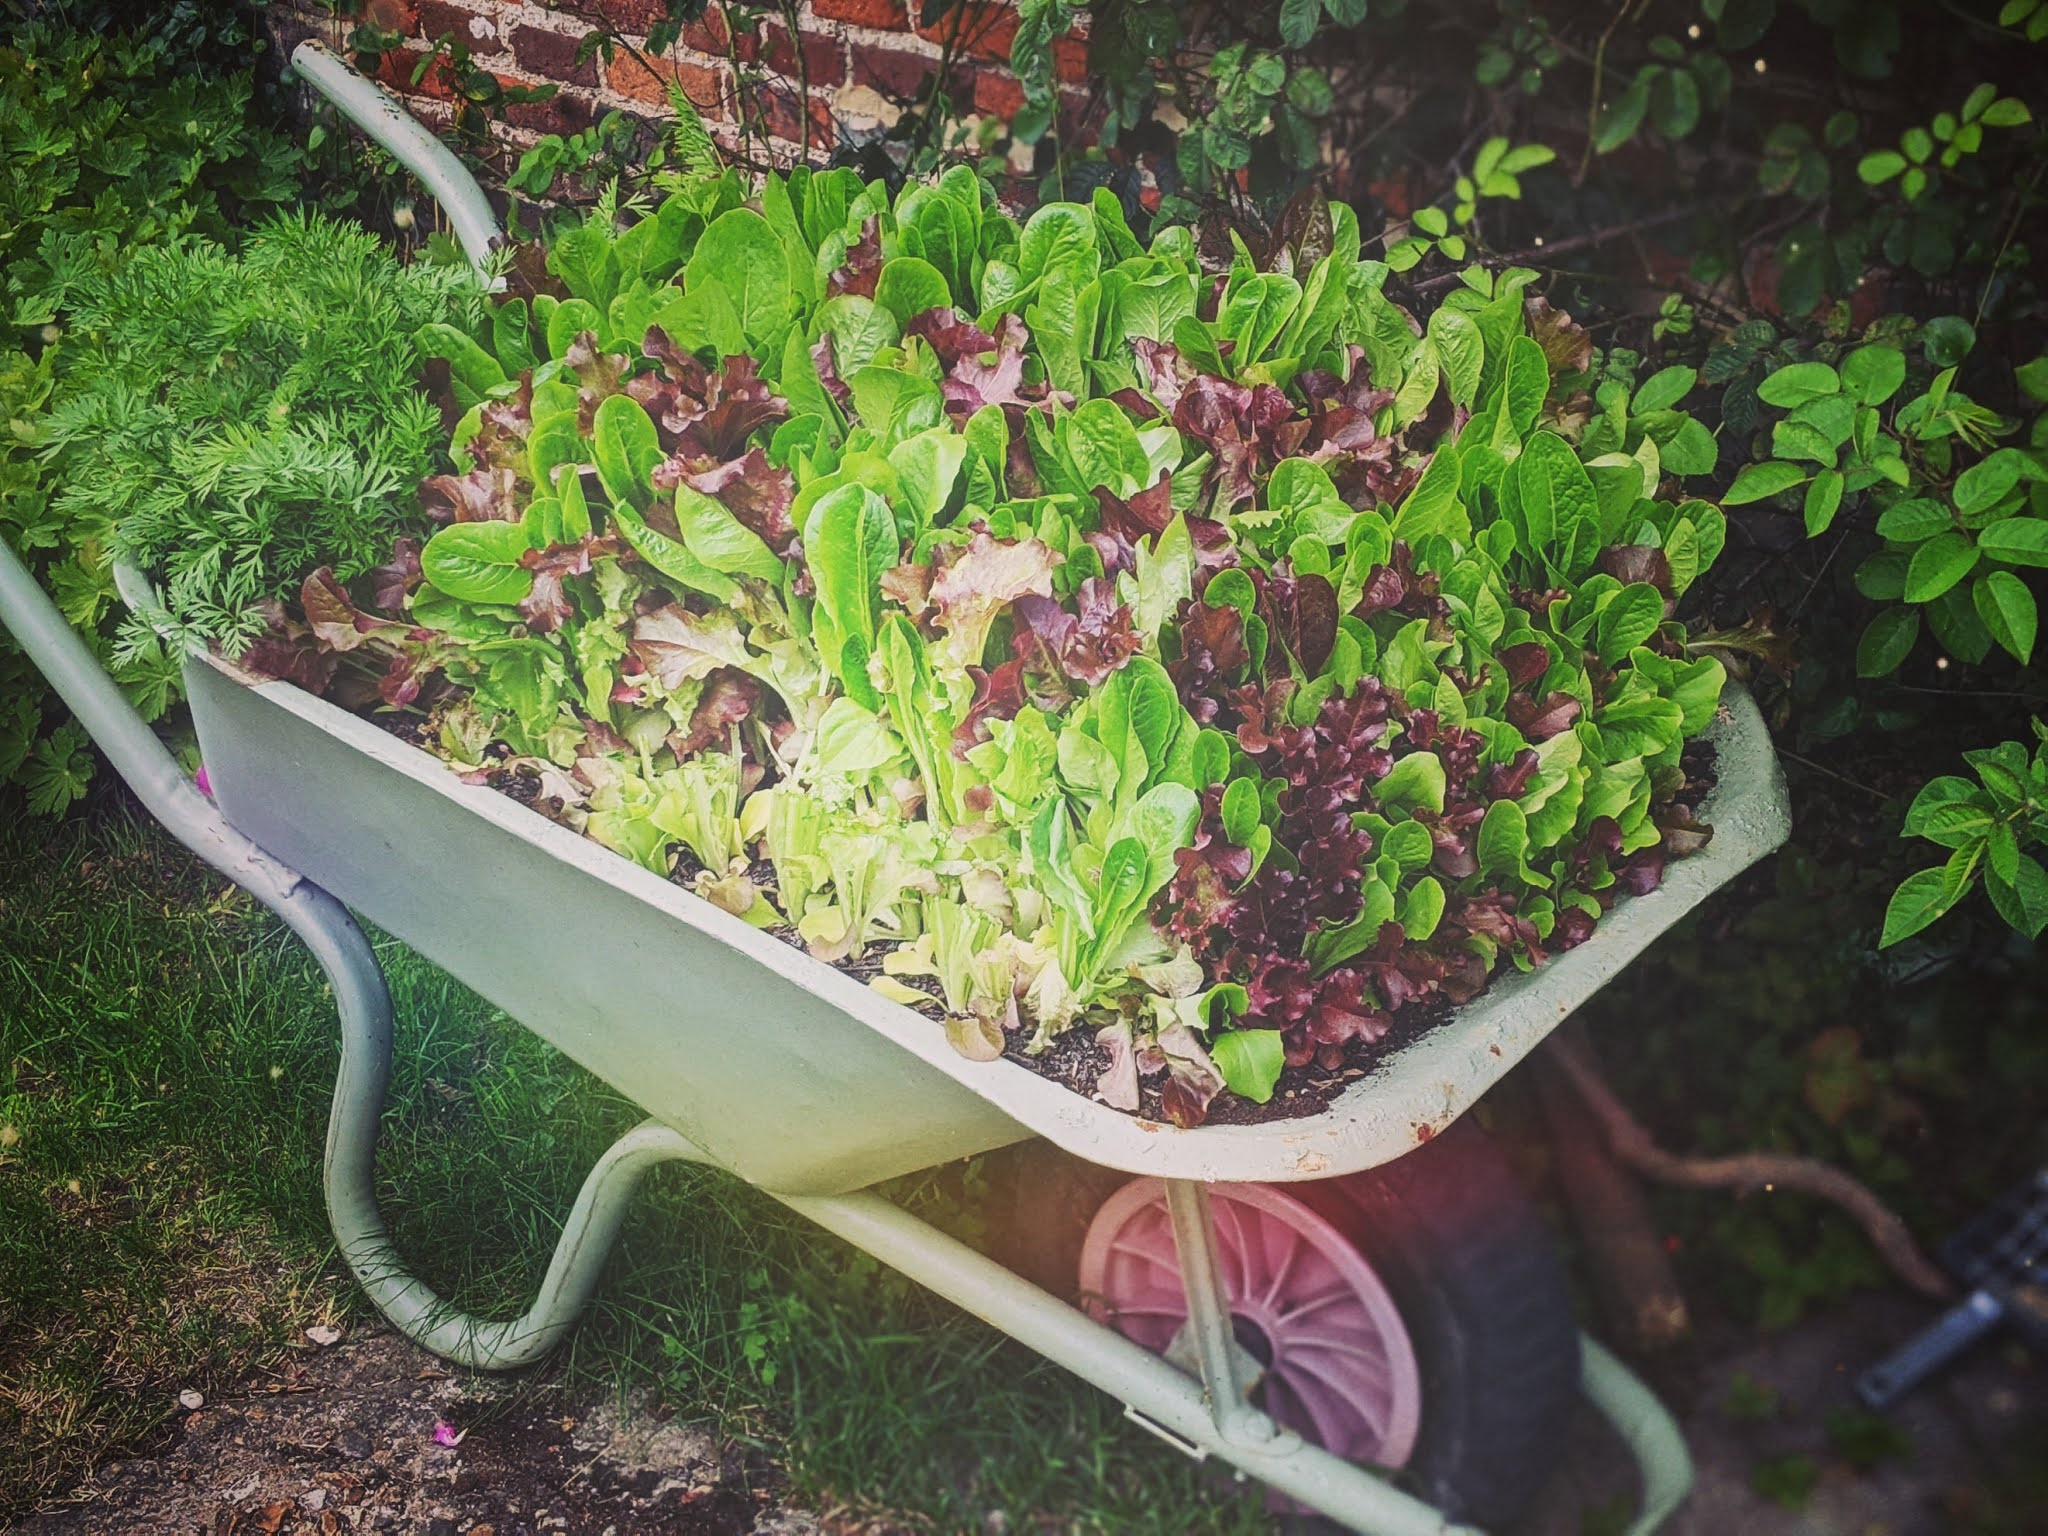 Home grown salad leaves DIY wheelbarrow planter